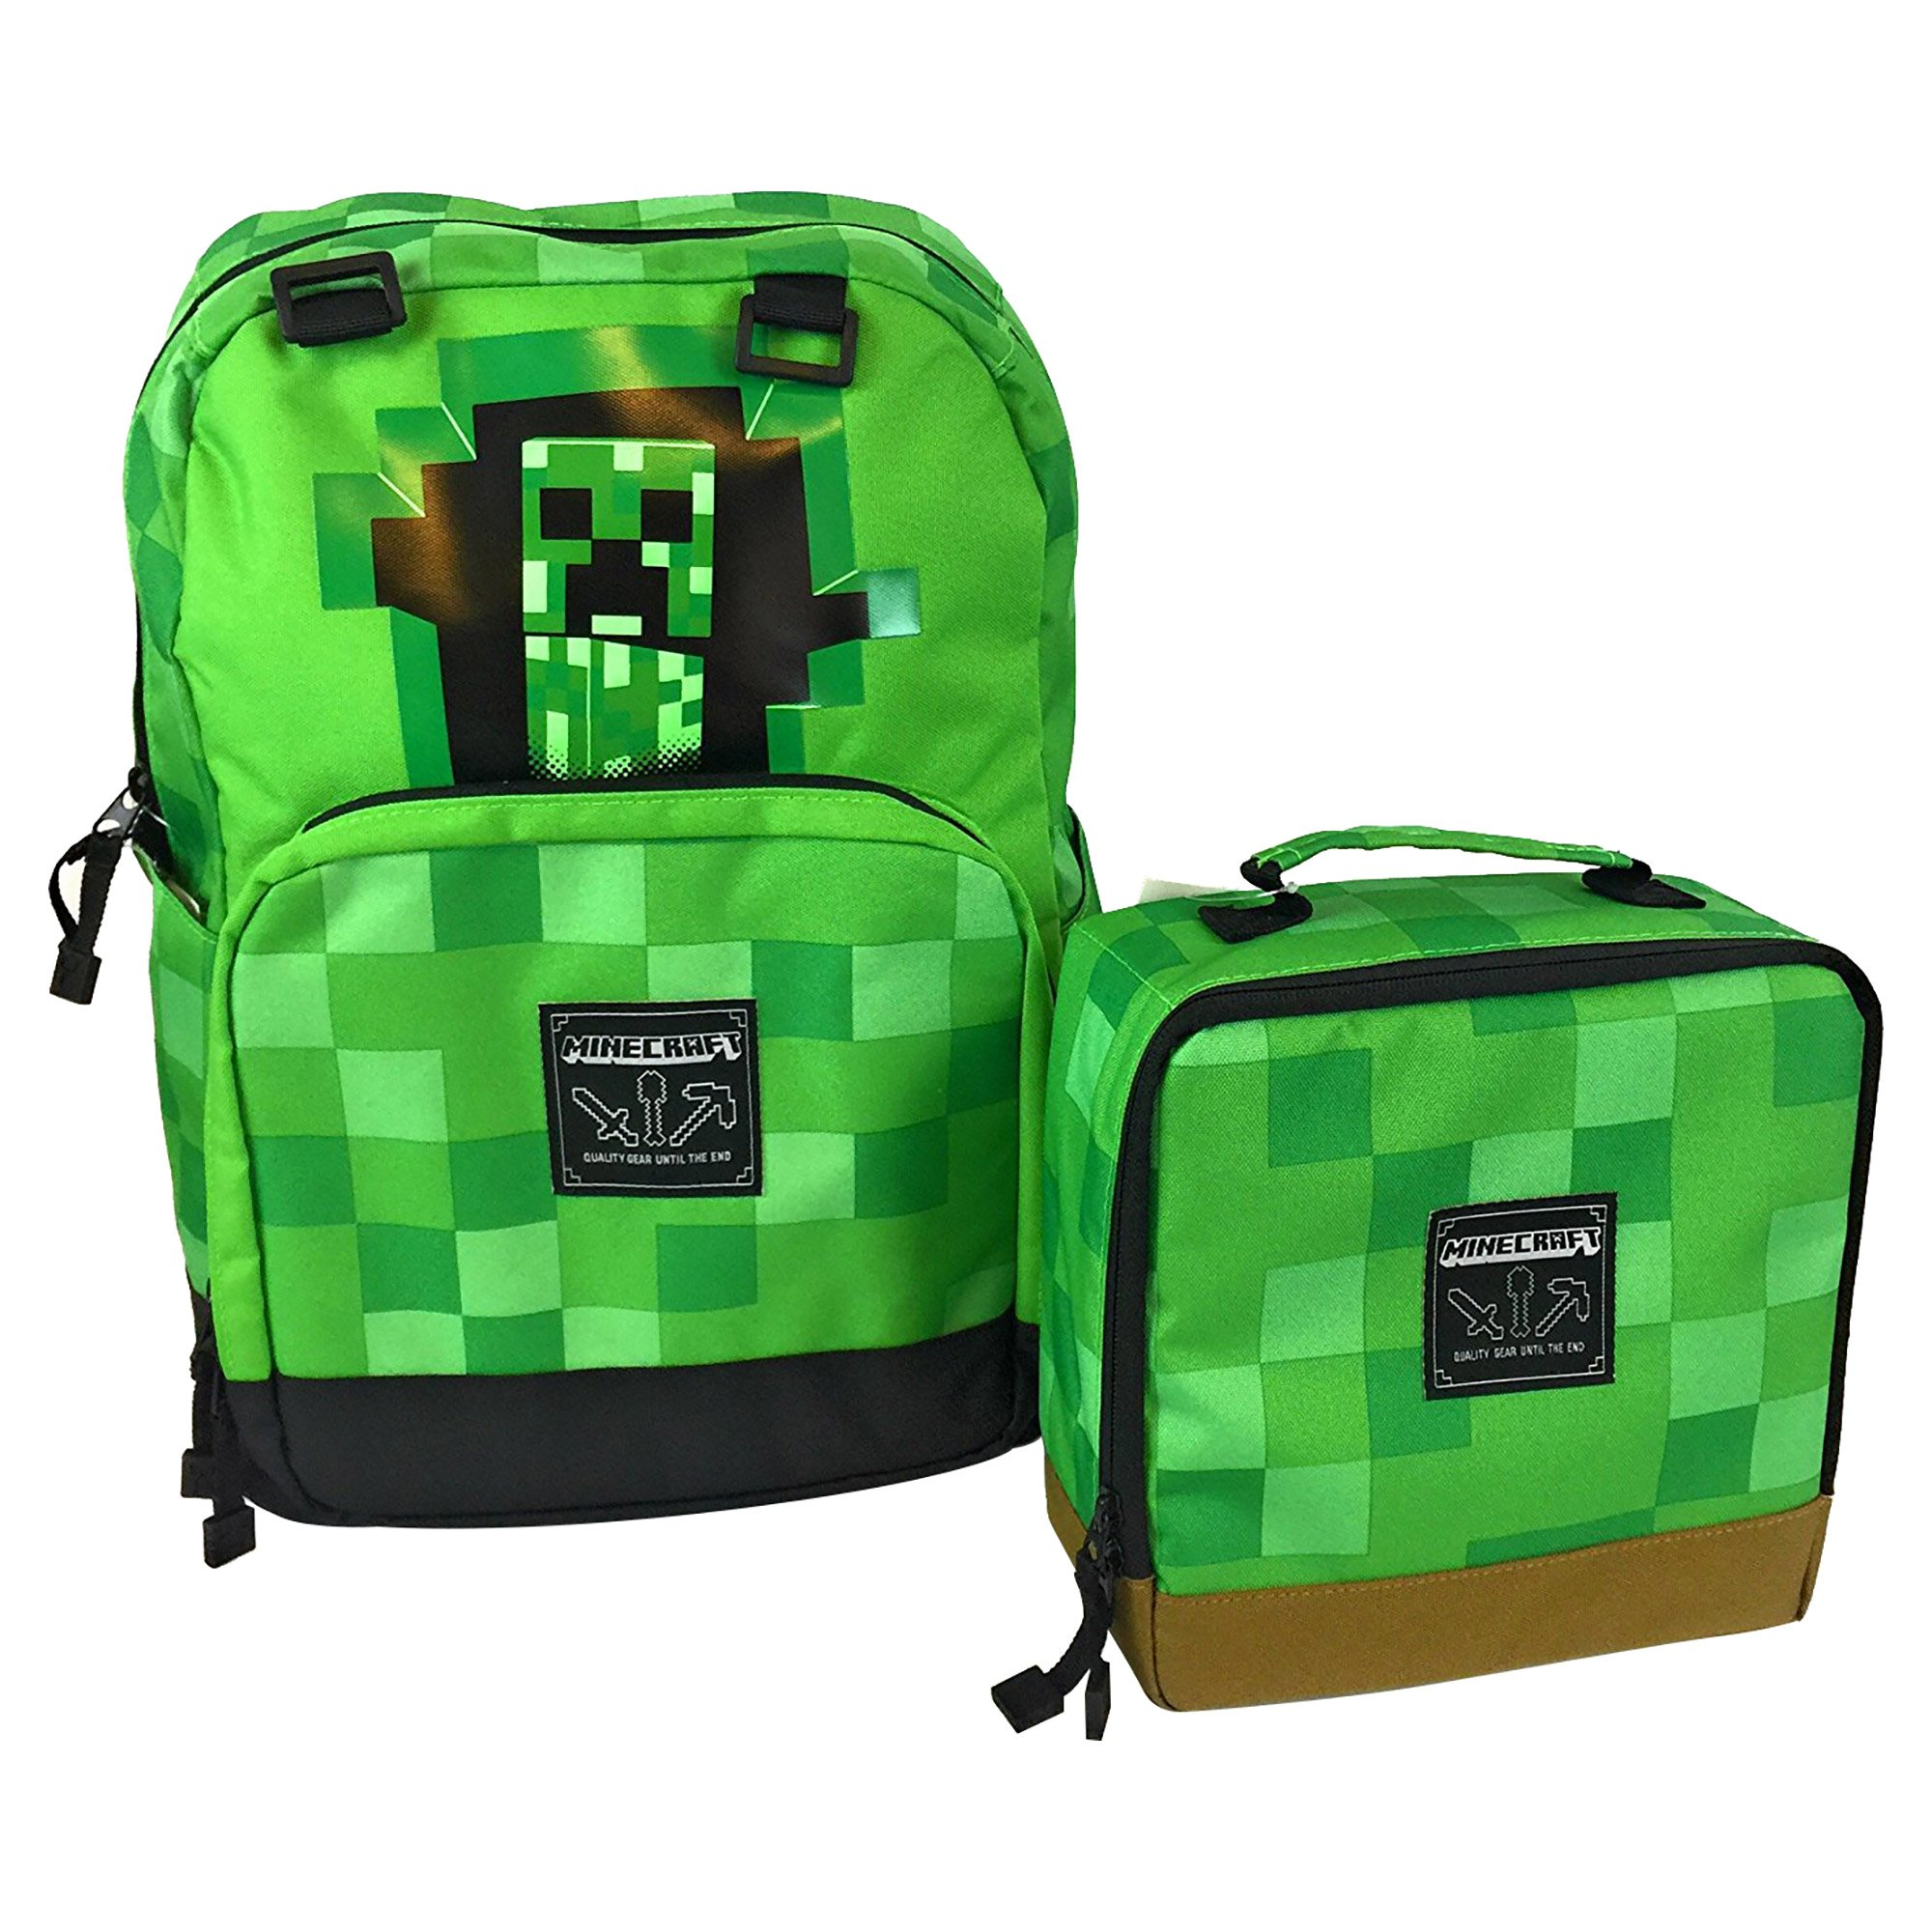 JINX Minecraft Creepy Creeper Backpack & Creeper Block Lunch Bag Set